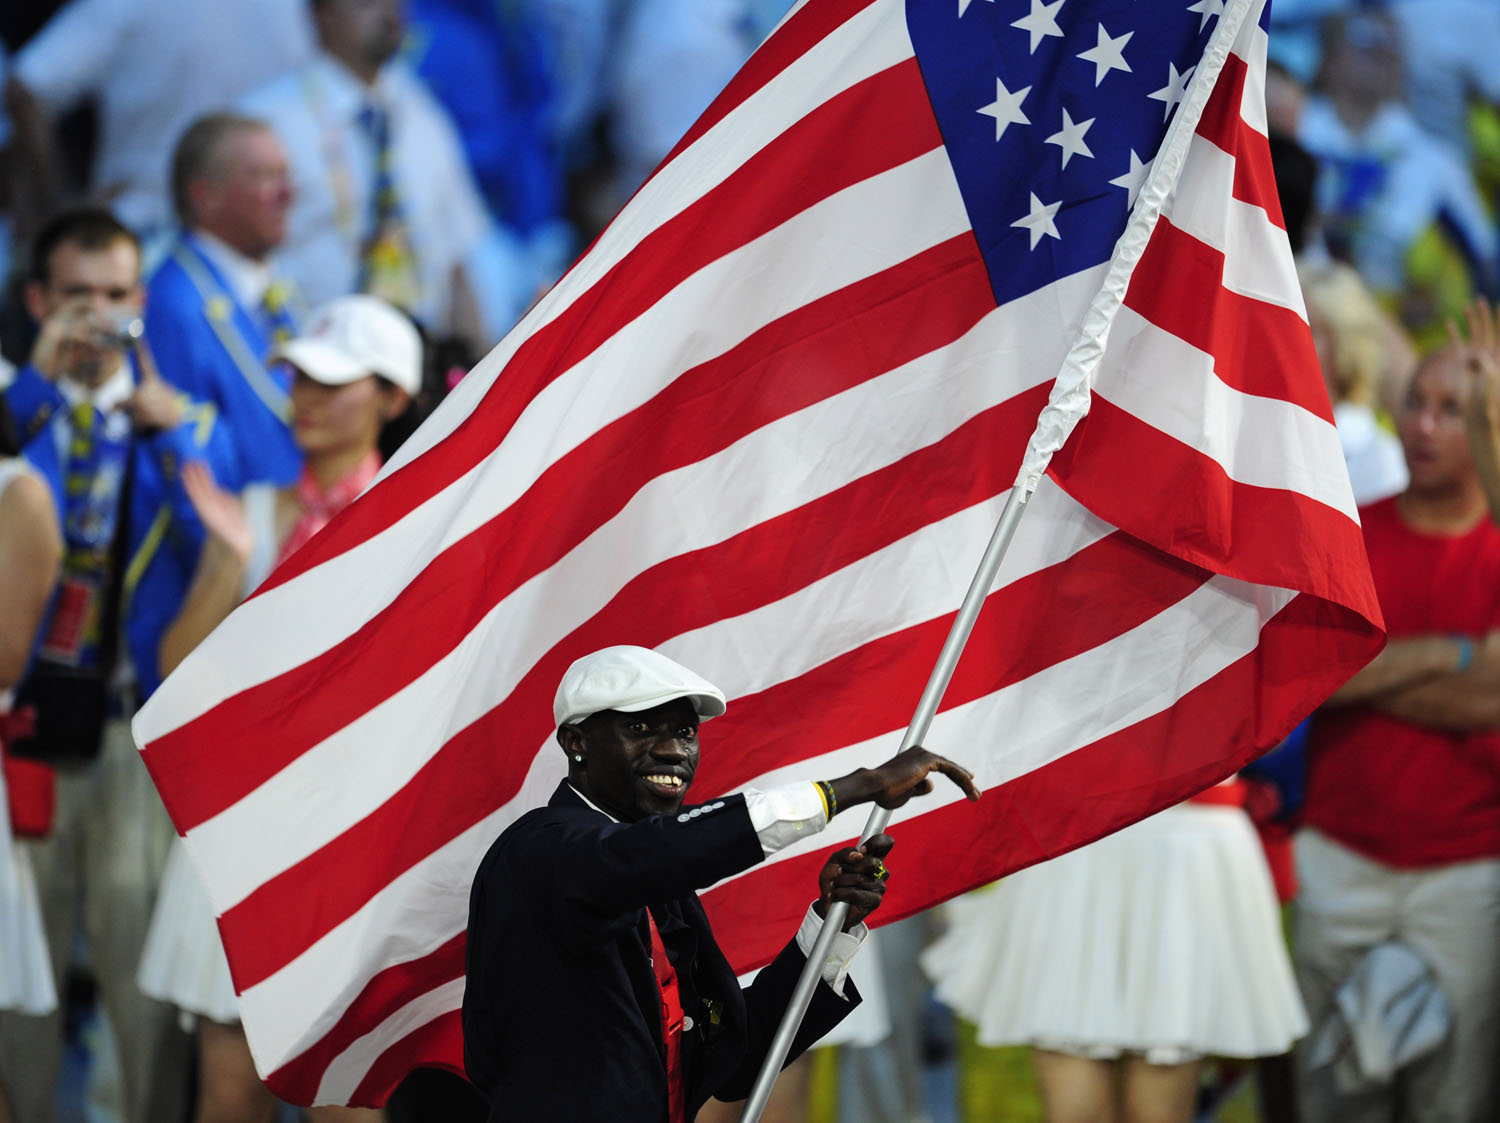 Track and Field athlete Lopez Lomong, flag-bearer of the U.S. Olympic team, marches during the opening ceremony of the Beijing 2008 Olympic Games.